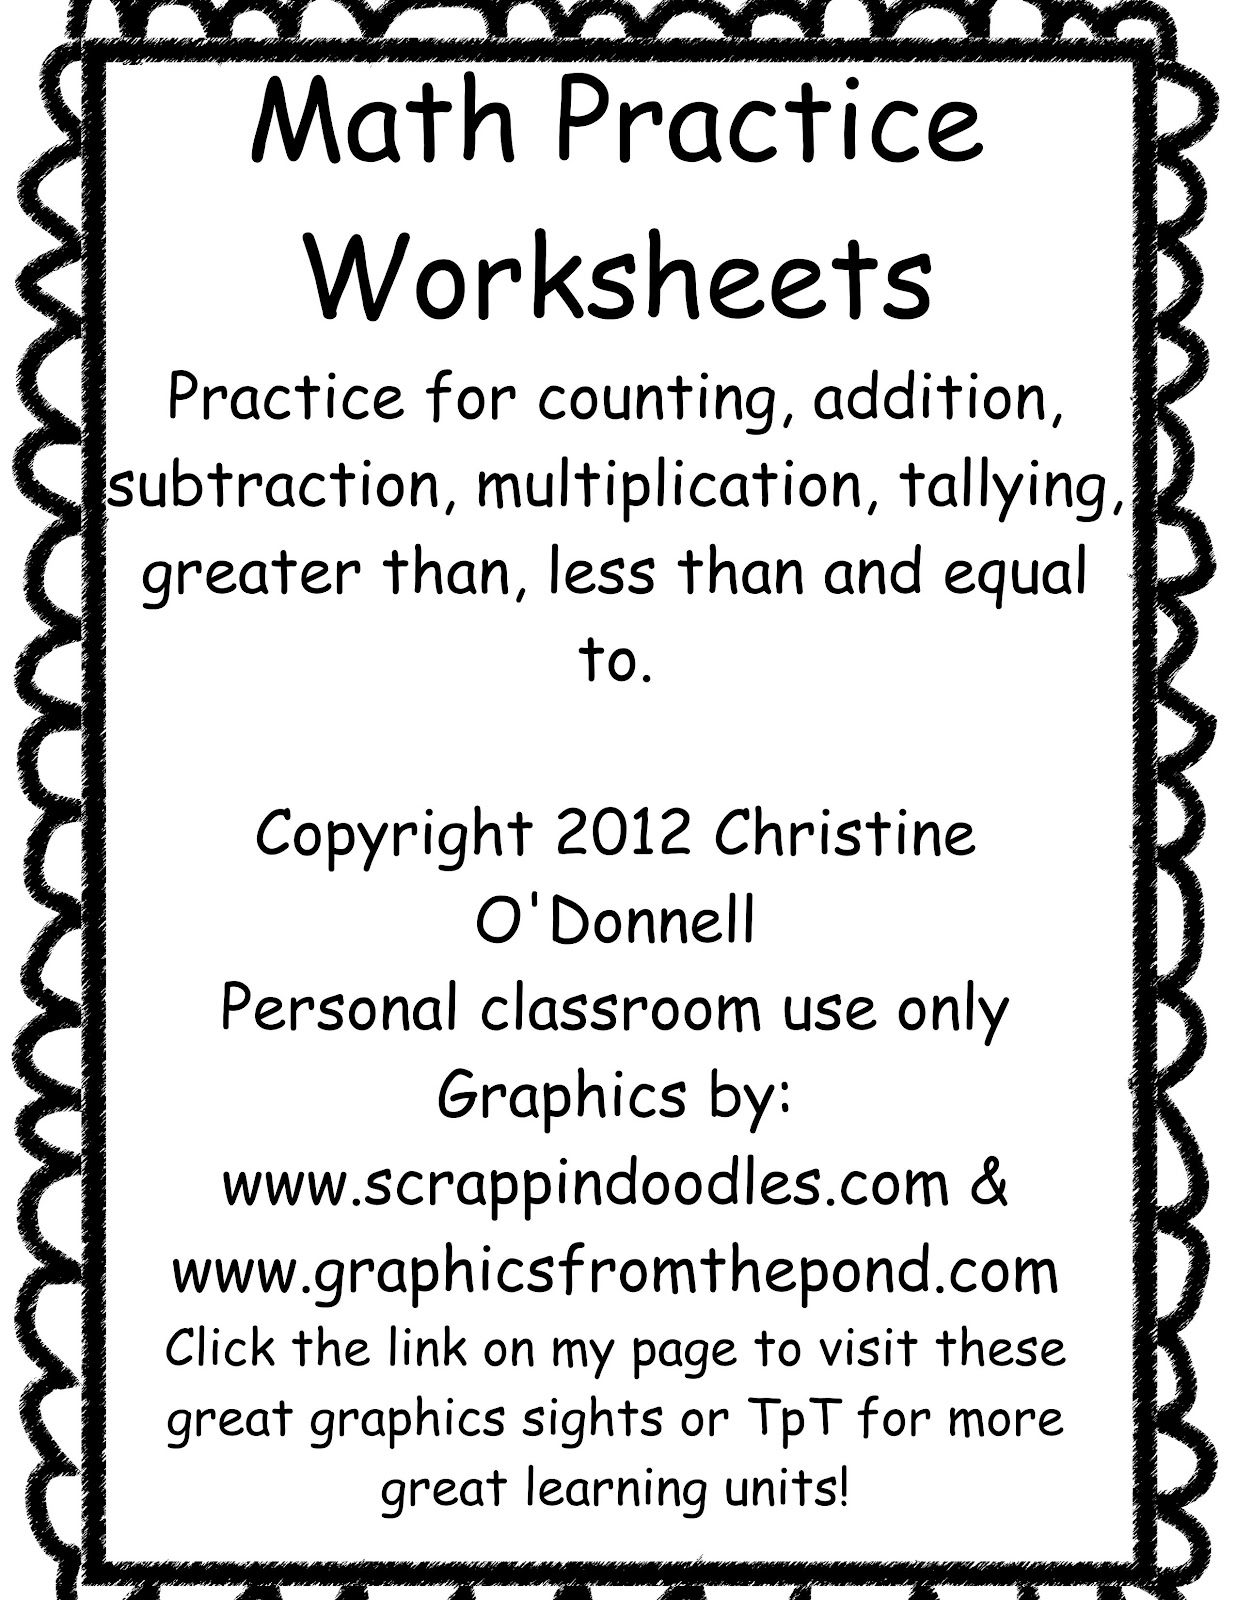 Worksheets Math Worksheets Creator addition worksheet creator super kids math worksheets delibertad the crazy pre k classroom practice freebies creator